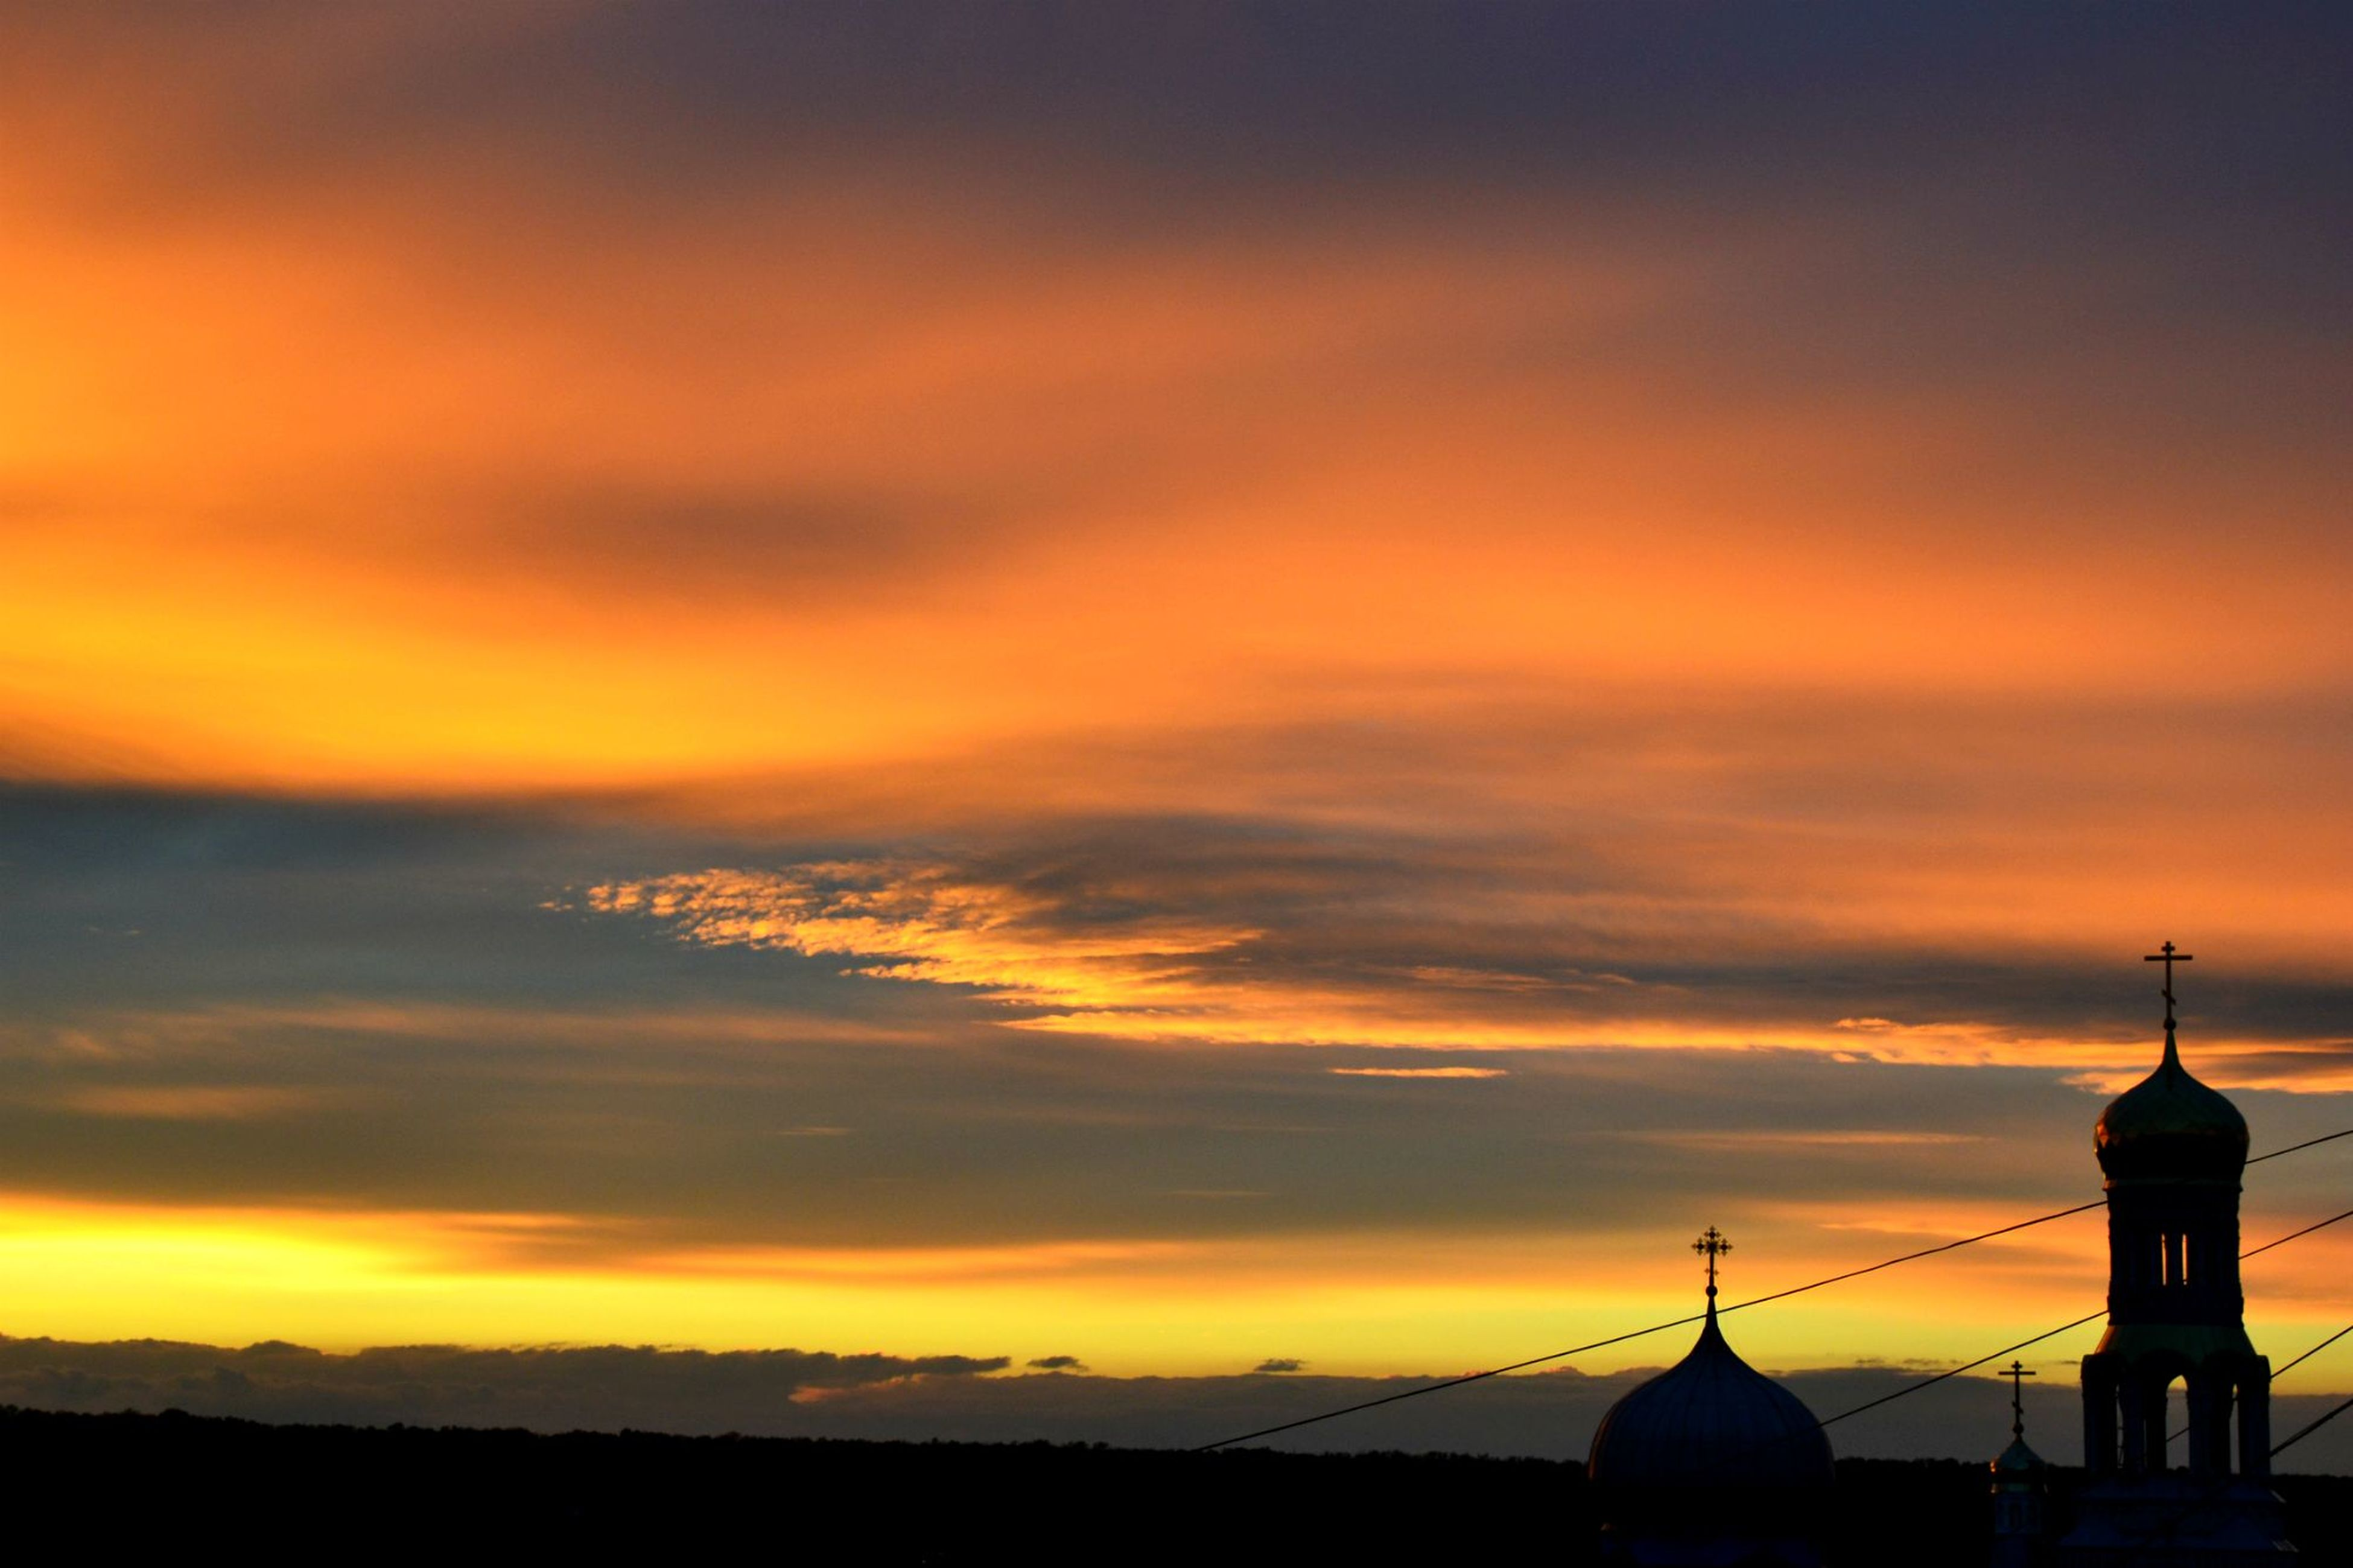 sunset, orange color, sky, architecture, built structure, building exterior, silhouette, scenics, beauty in nature, cloud - sky, dome, place of worship, religion, spirituality, dramatic sky, nature, idyllic, tranquility, cloud, outdoors